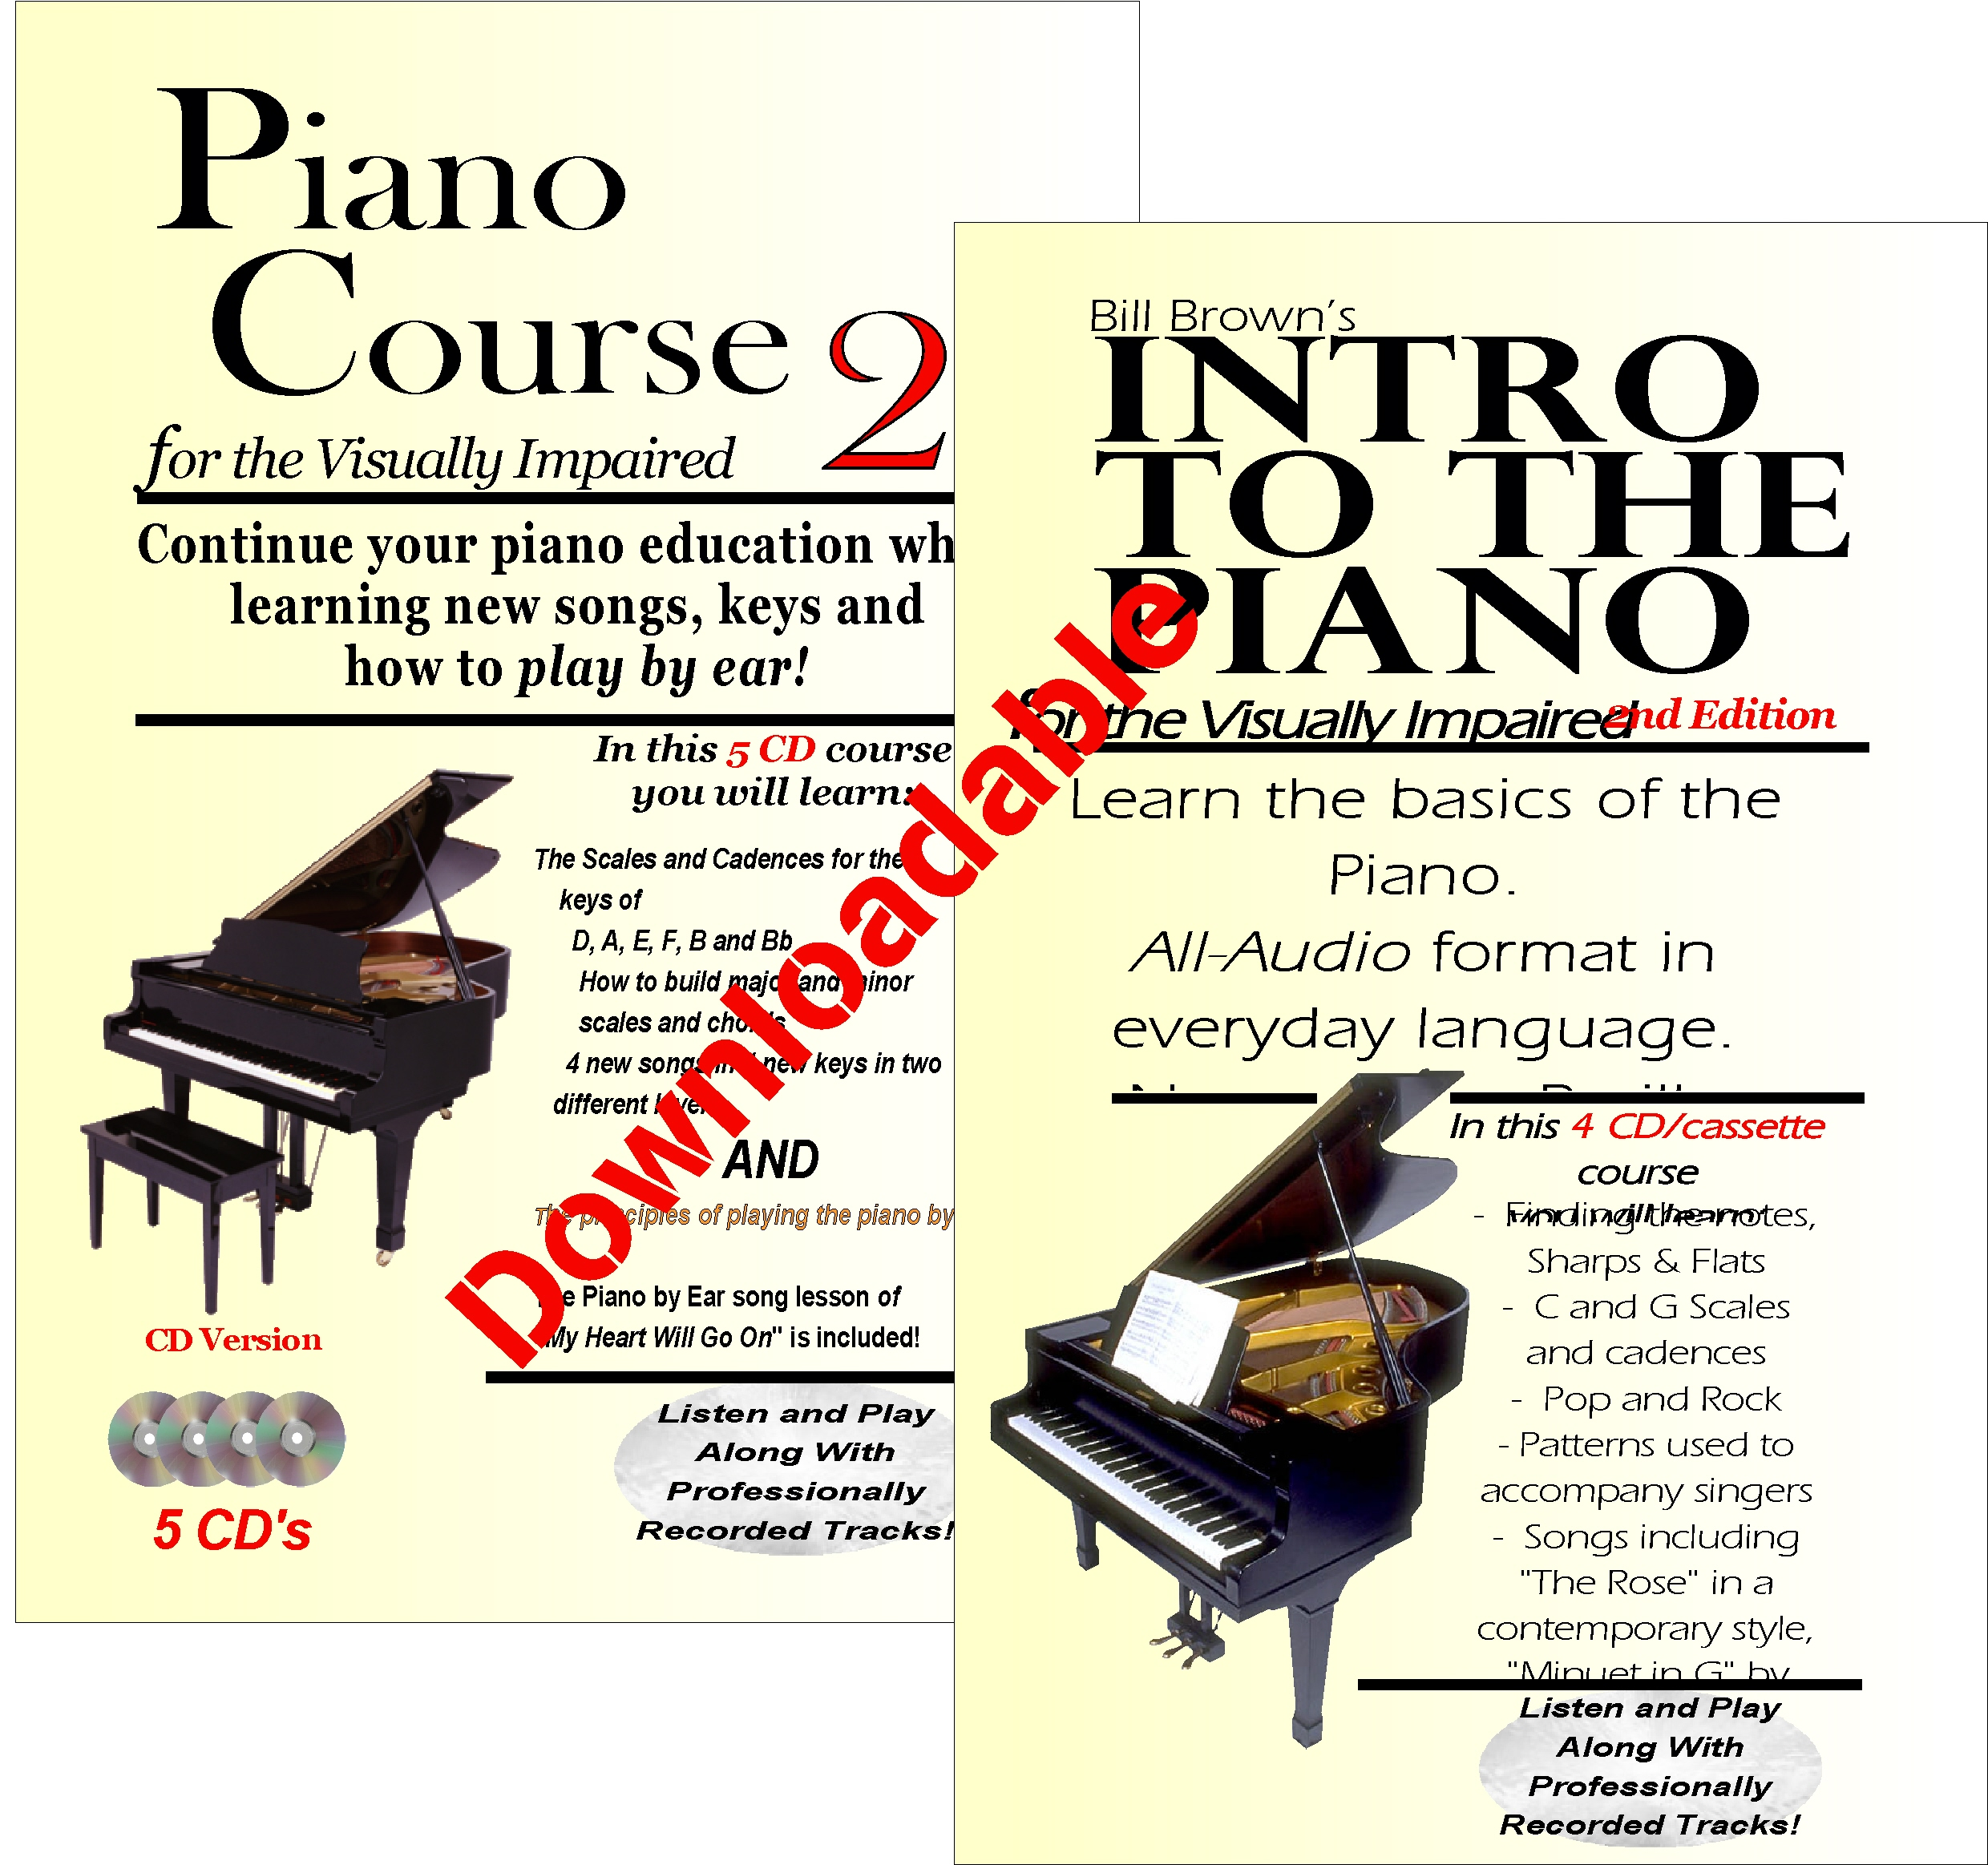 Intro to the Piano and Piano Course 2 for the Visually Impaired (Downloadable)